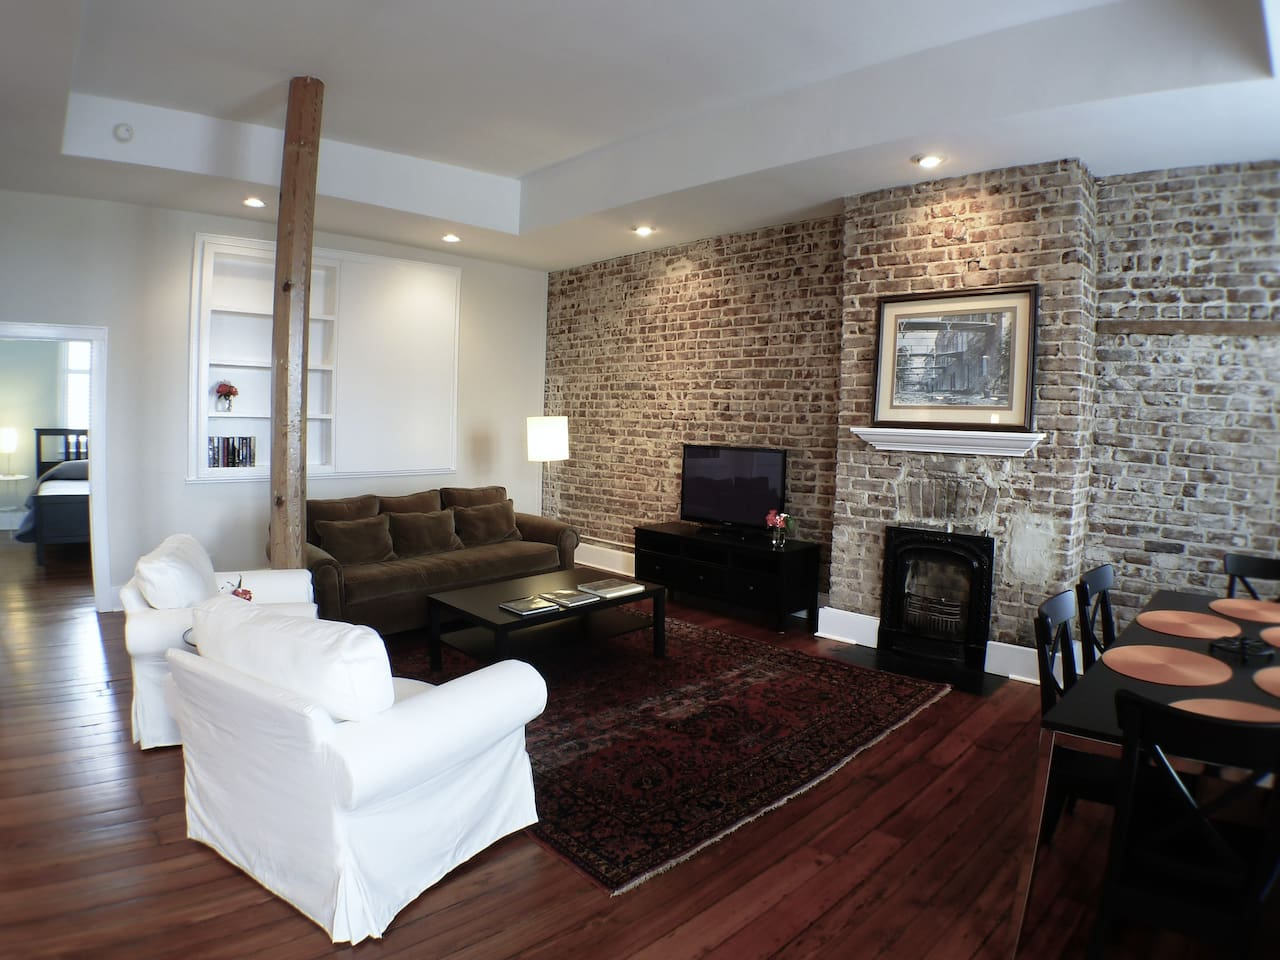 Living and dining area with original exposed brick.